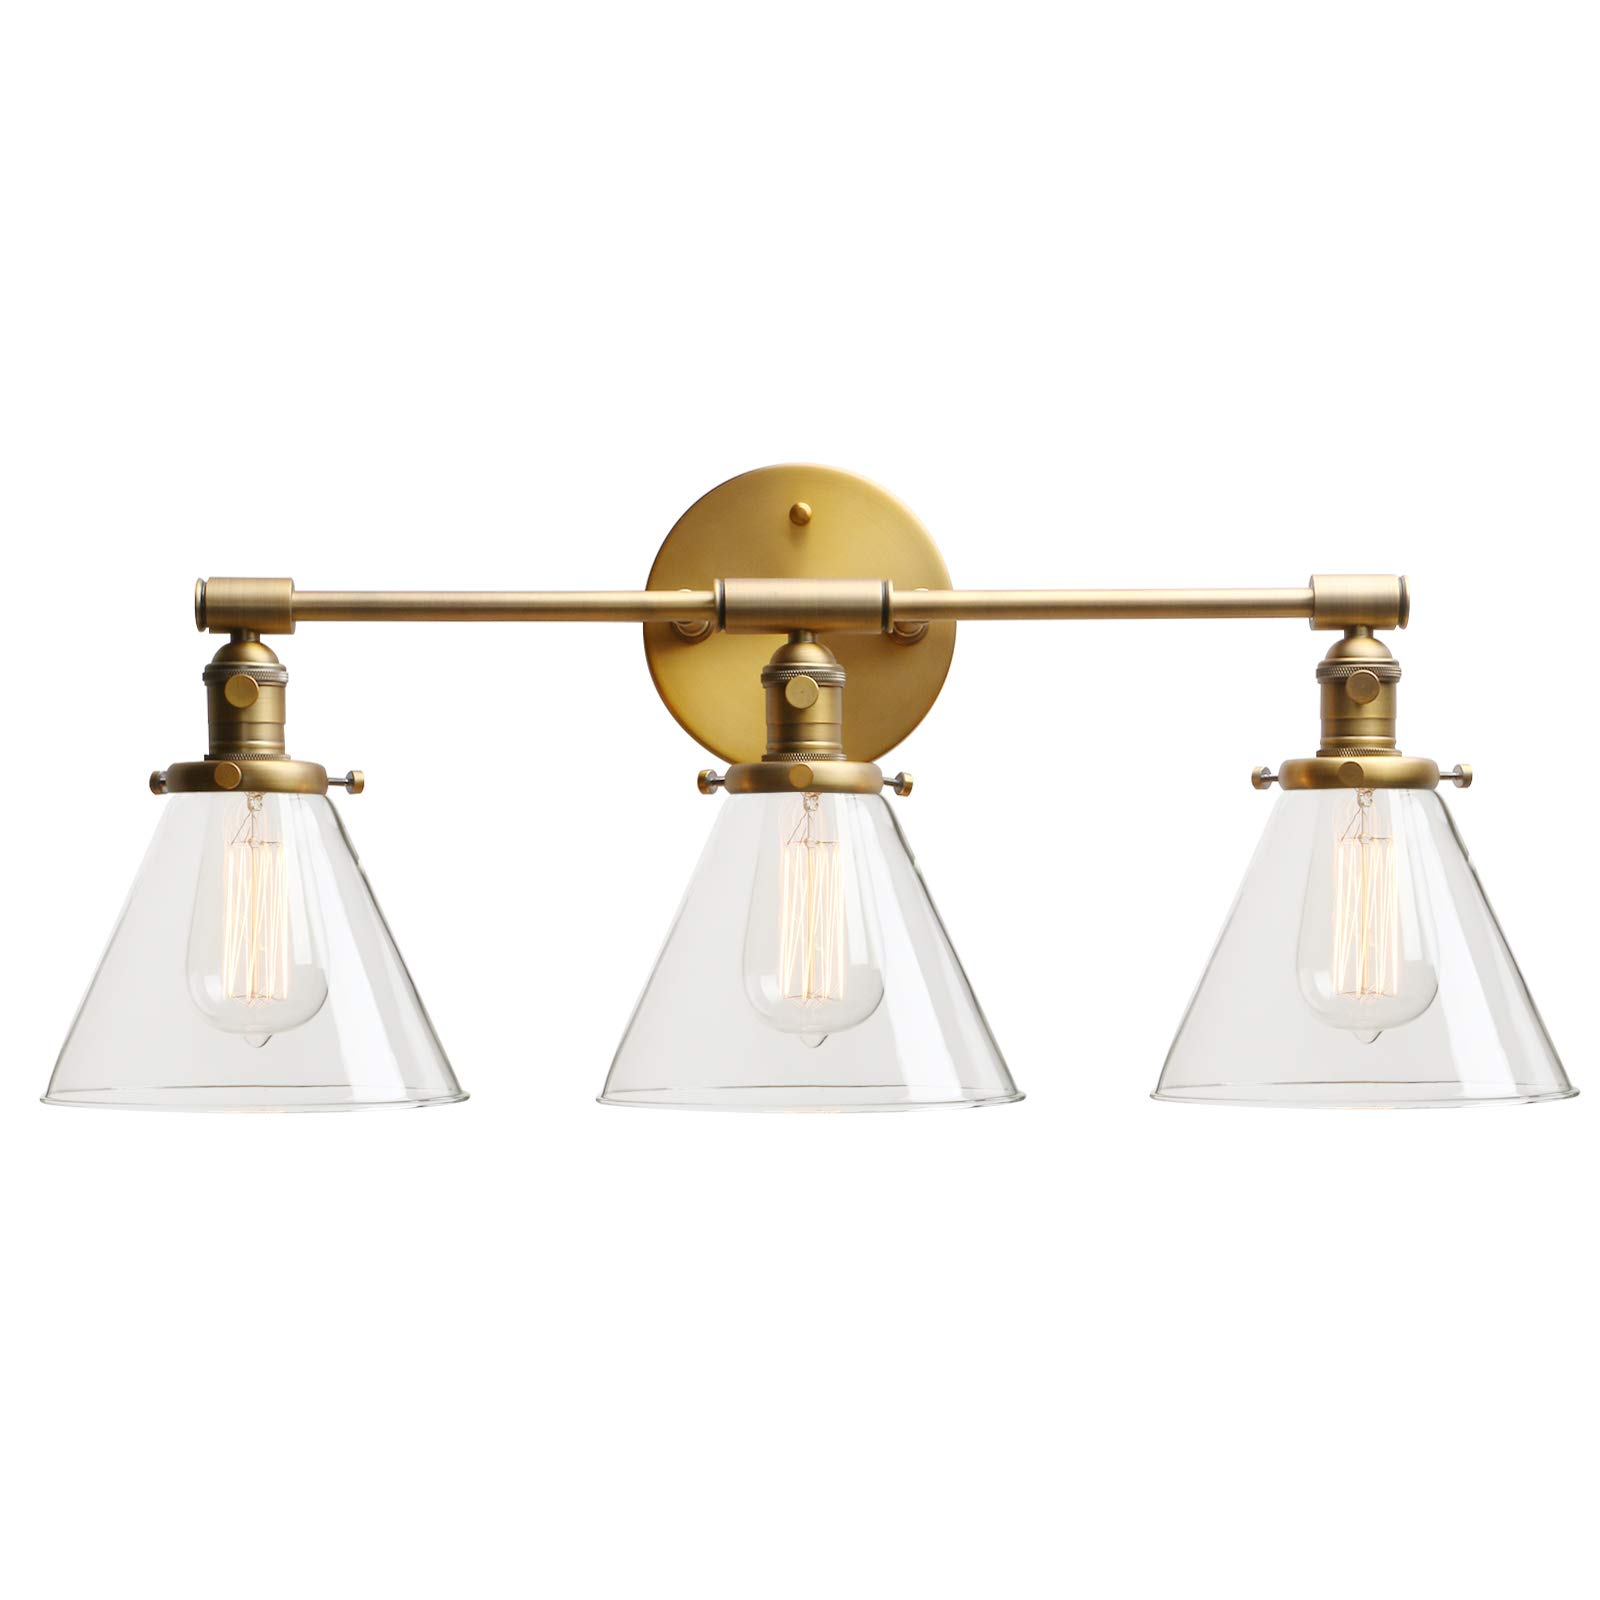 Permo Vintage Industrial Antique Three-Light Wall Sconces with Funnel Flared Clear Glass Shade (Antique)